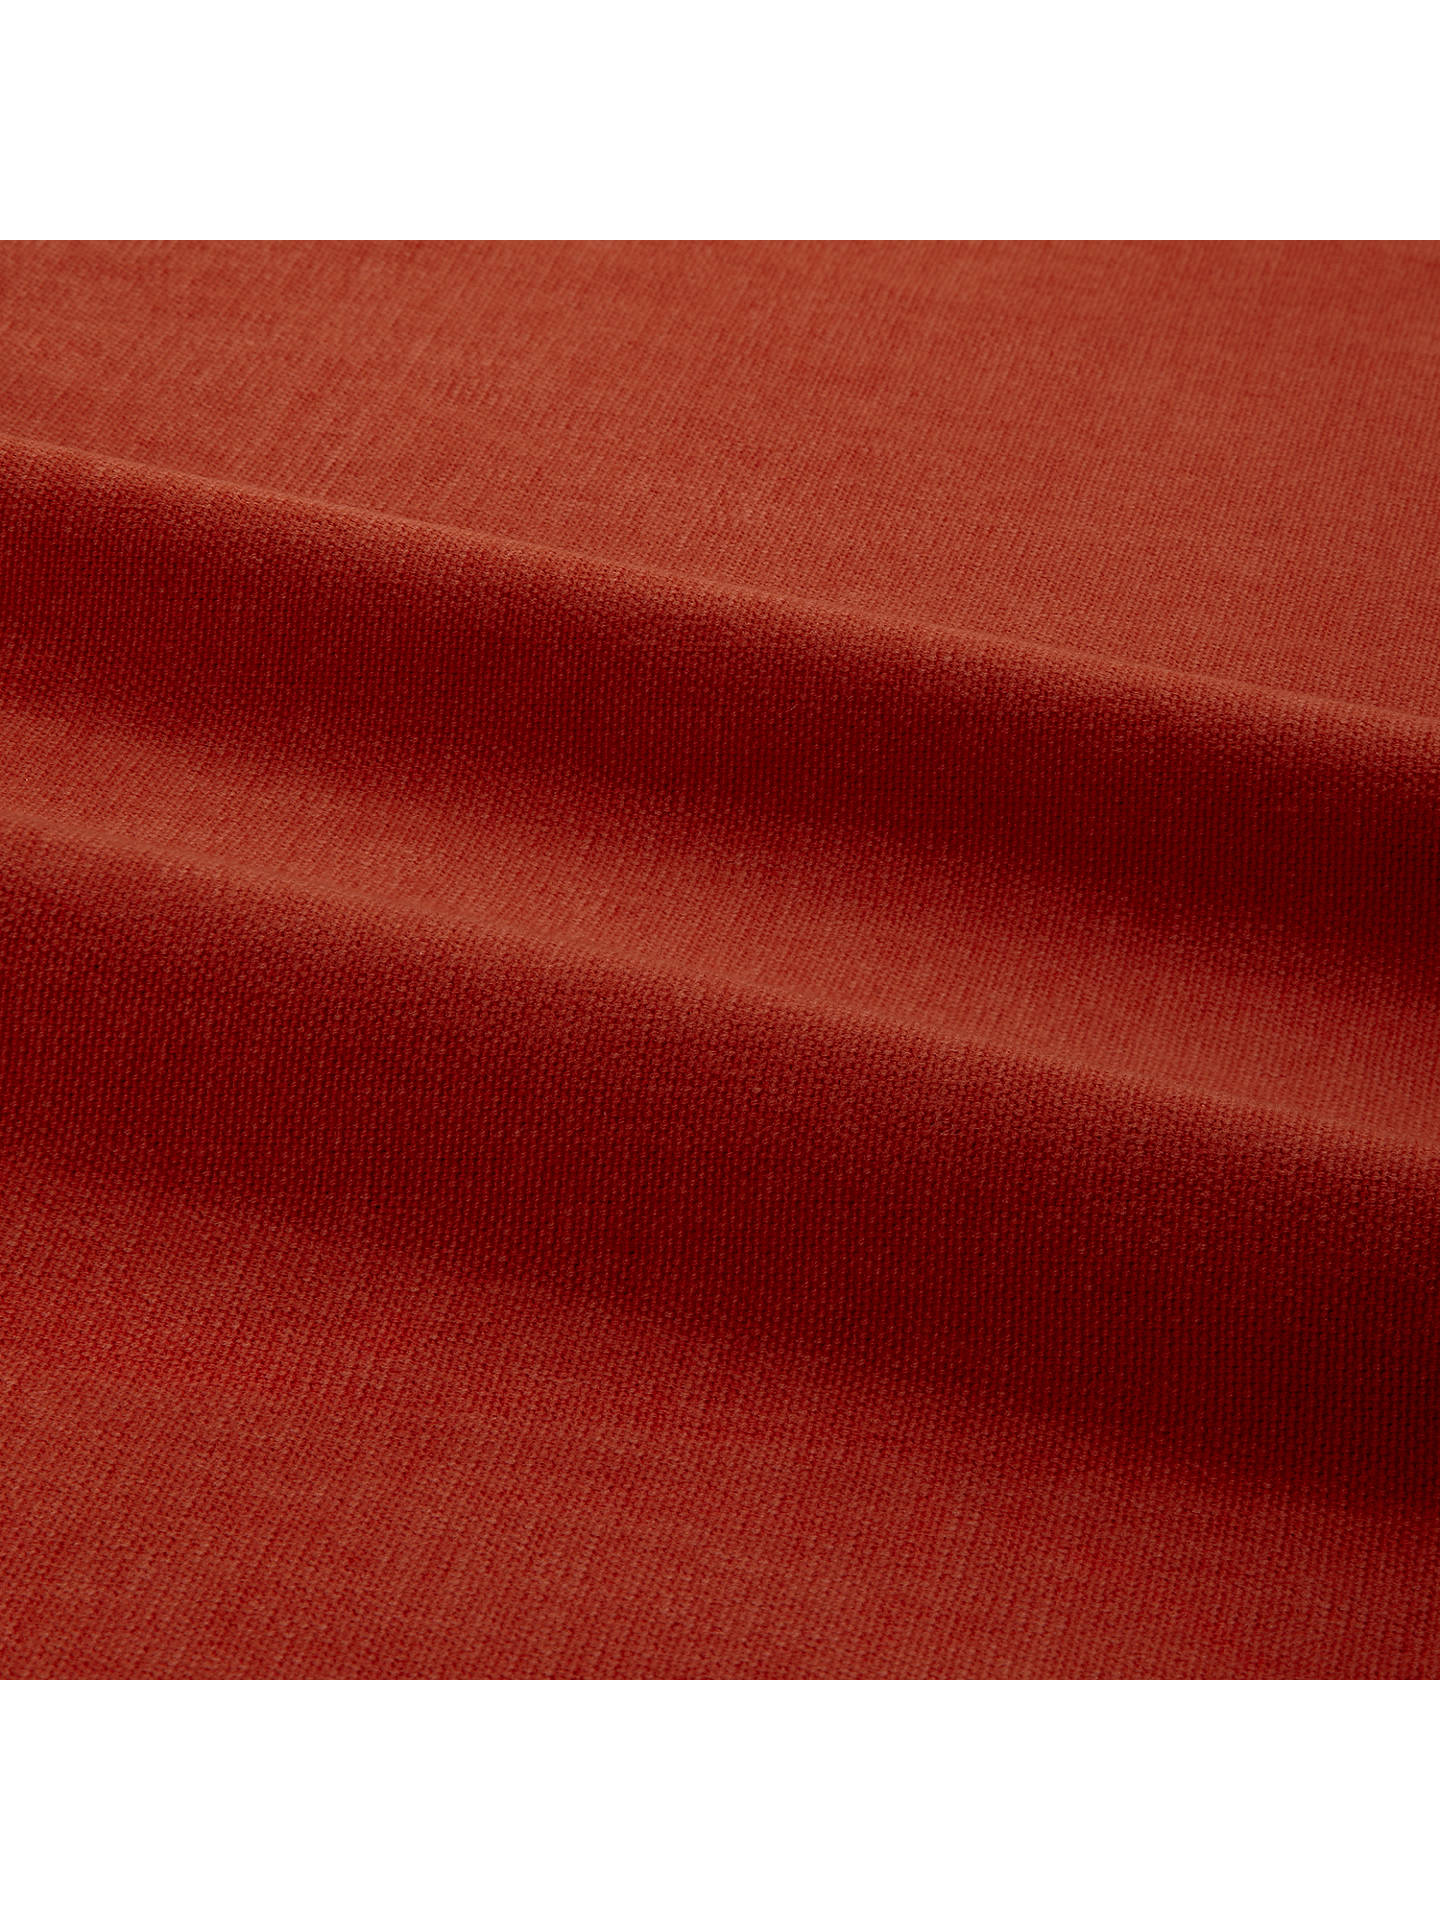 BuyJohn Lewis & Partners Luna Furnishing Fabric, Paprika Online at johnlewis.com